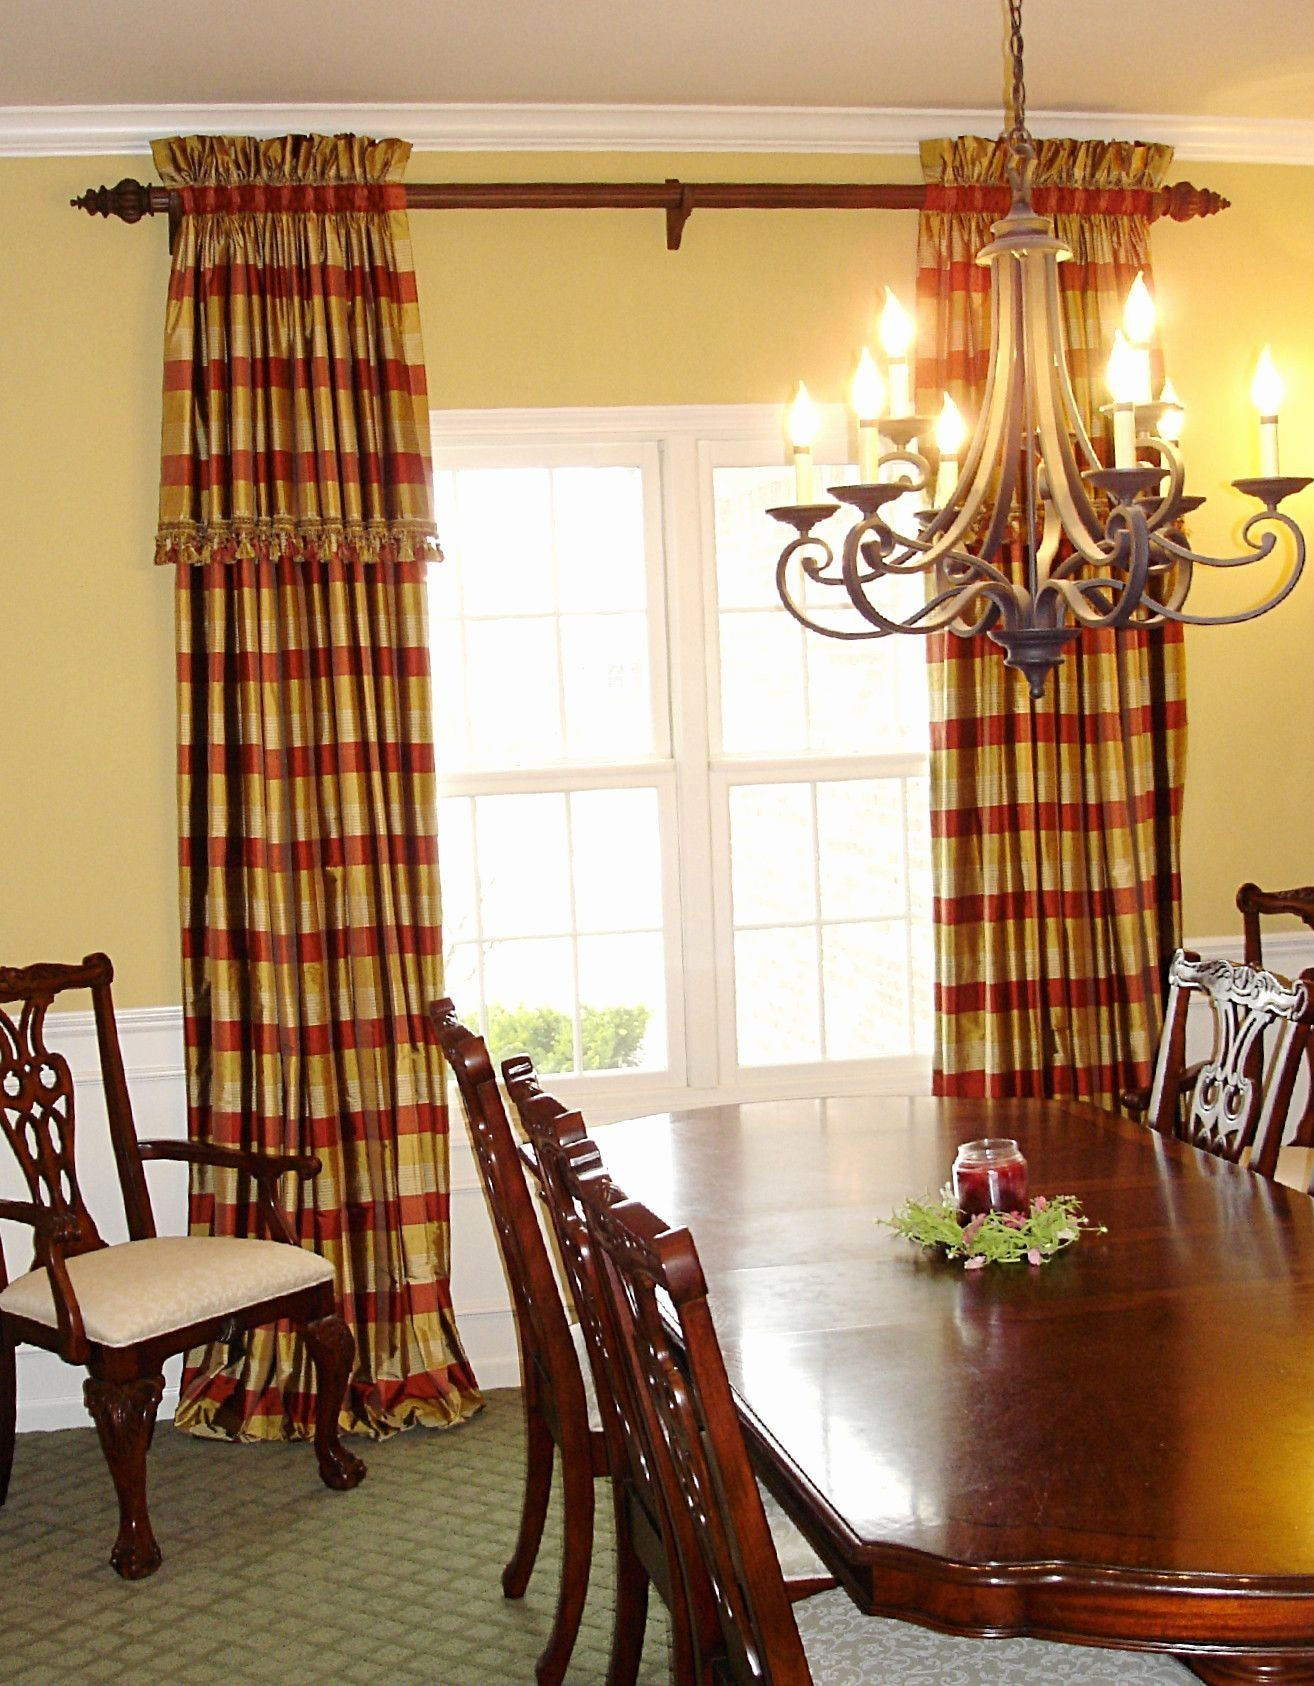 Casual Dining Room Window Treatments Best Of Elegant Dining Room Draperies Casua Dining Room Window Treatments Elegant Dining Room Dining Room Windows